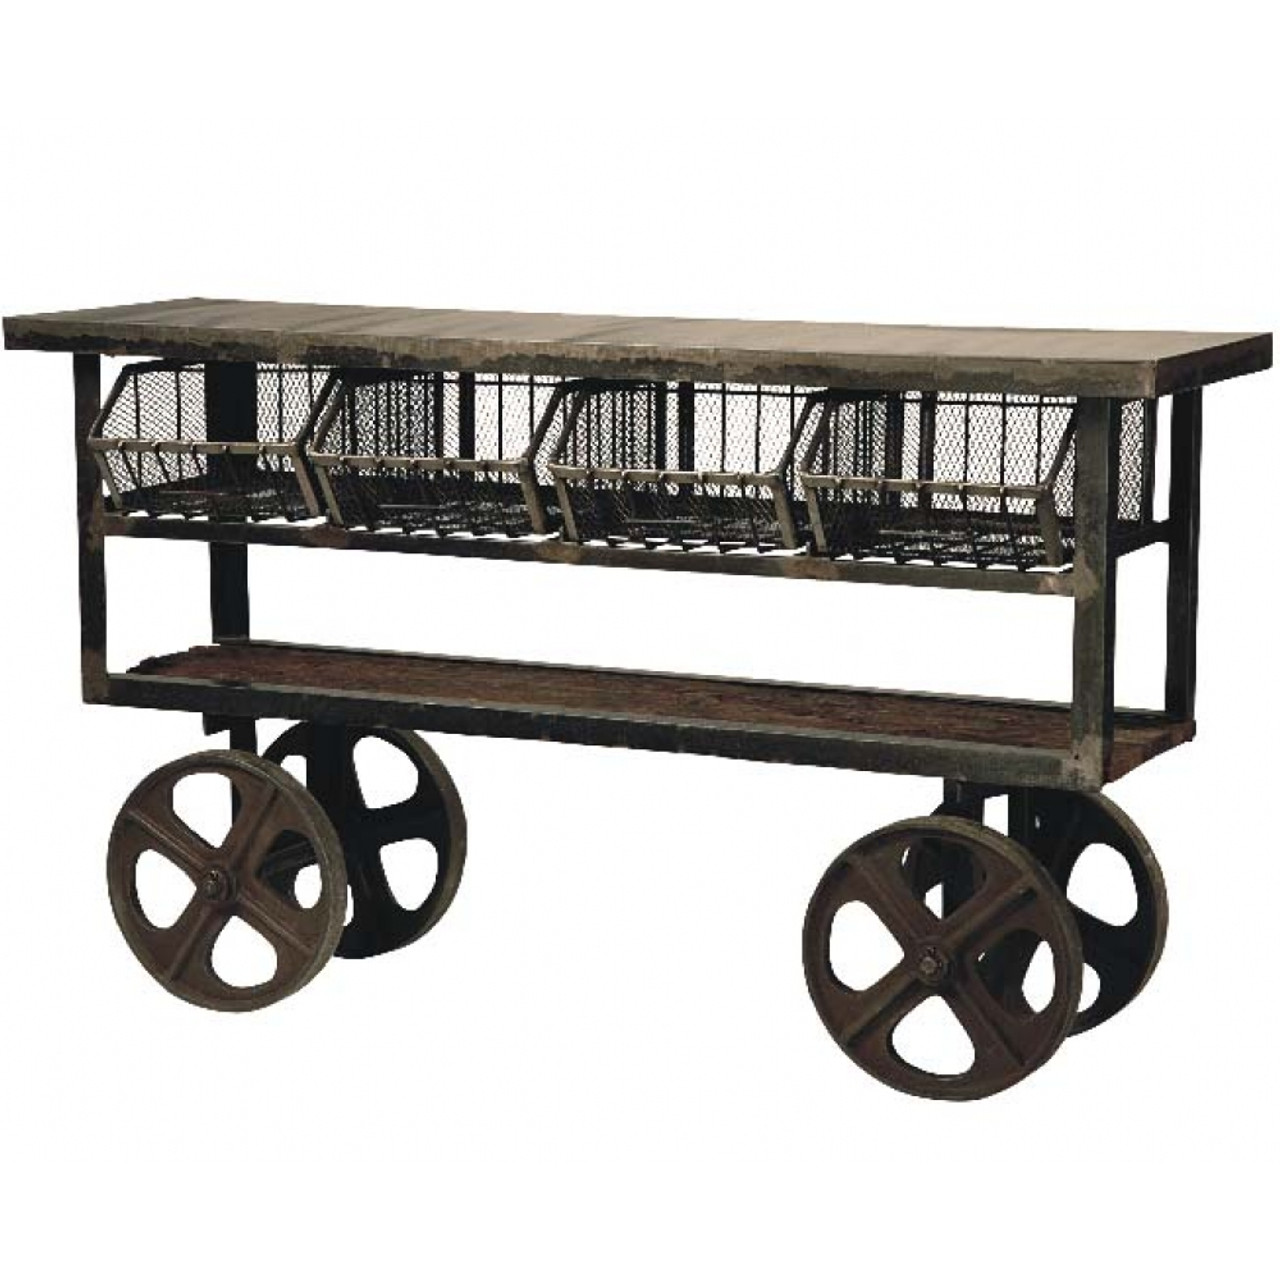 Vintage Kitchen Island Industrial Moving Rolling Cart: Industrial Rolling Kitchen Cart